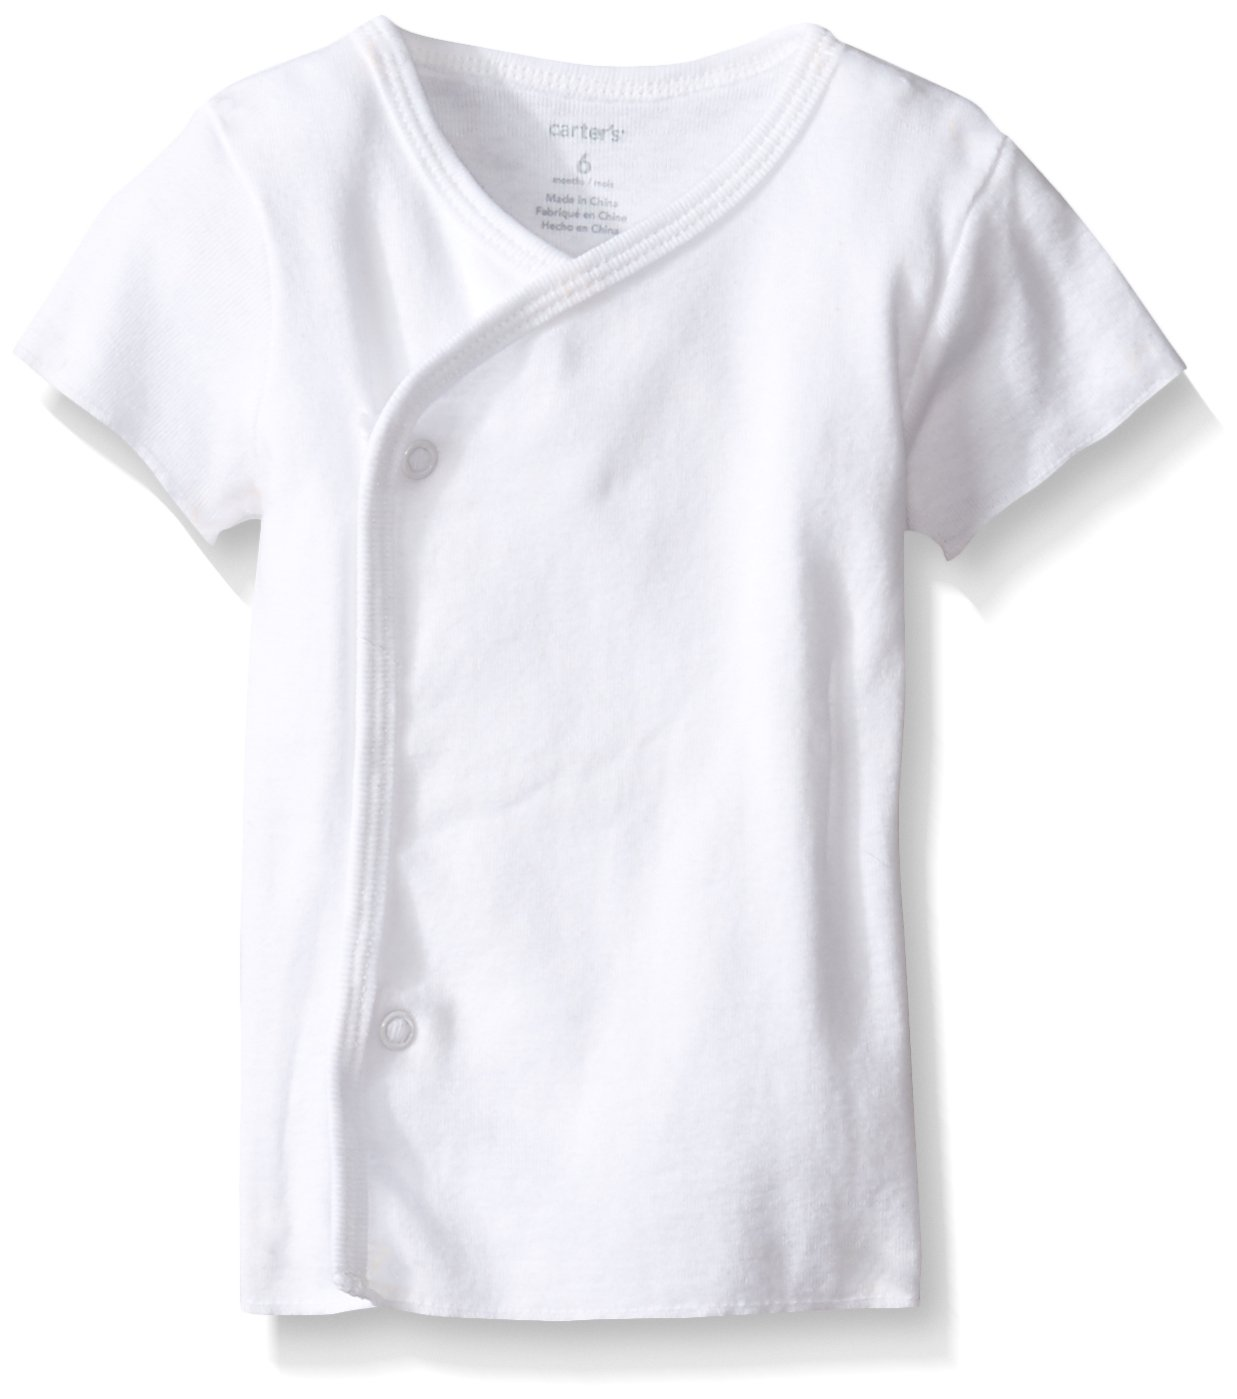 Carter's Baby White Multi-Pk Bodysuits 126g389 Carters